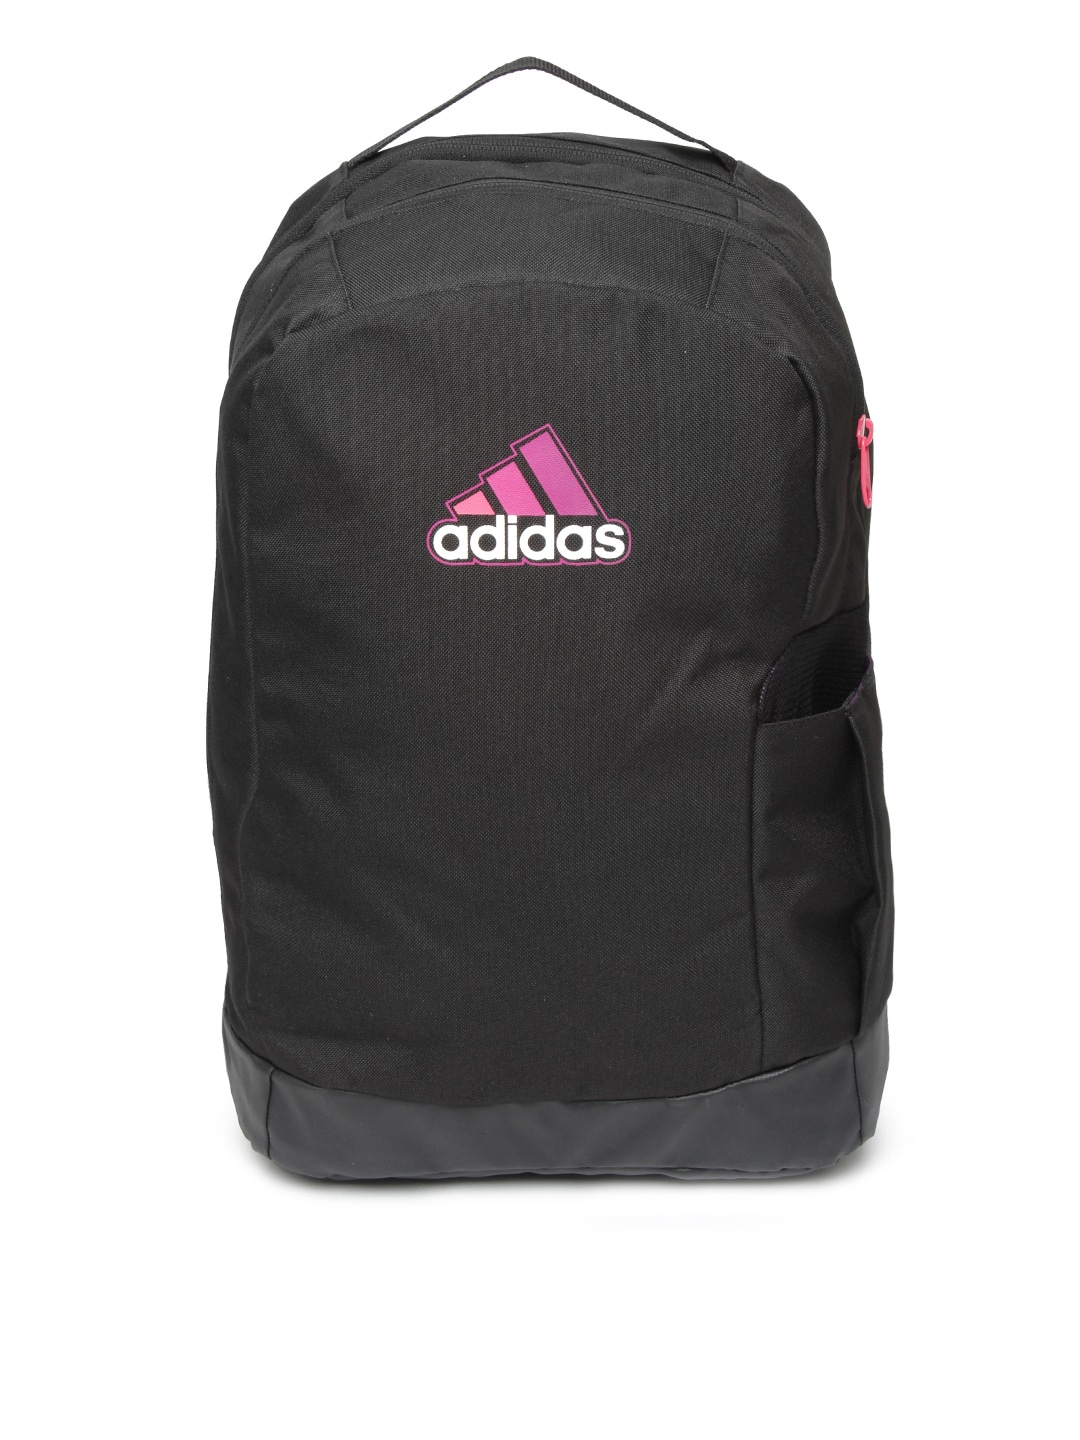 Adidas Adidas Unisex Black Backpack